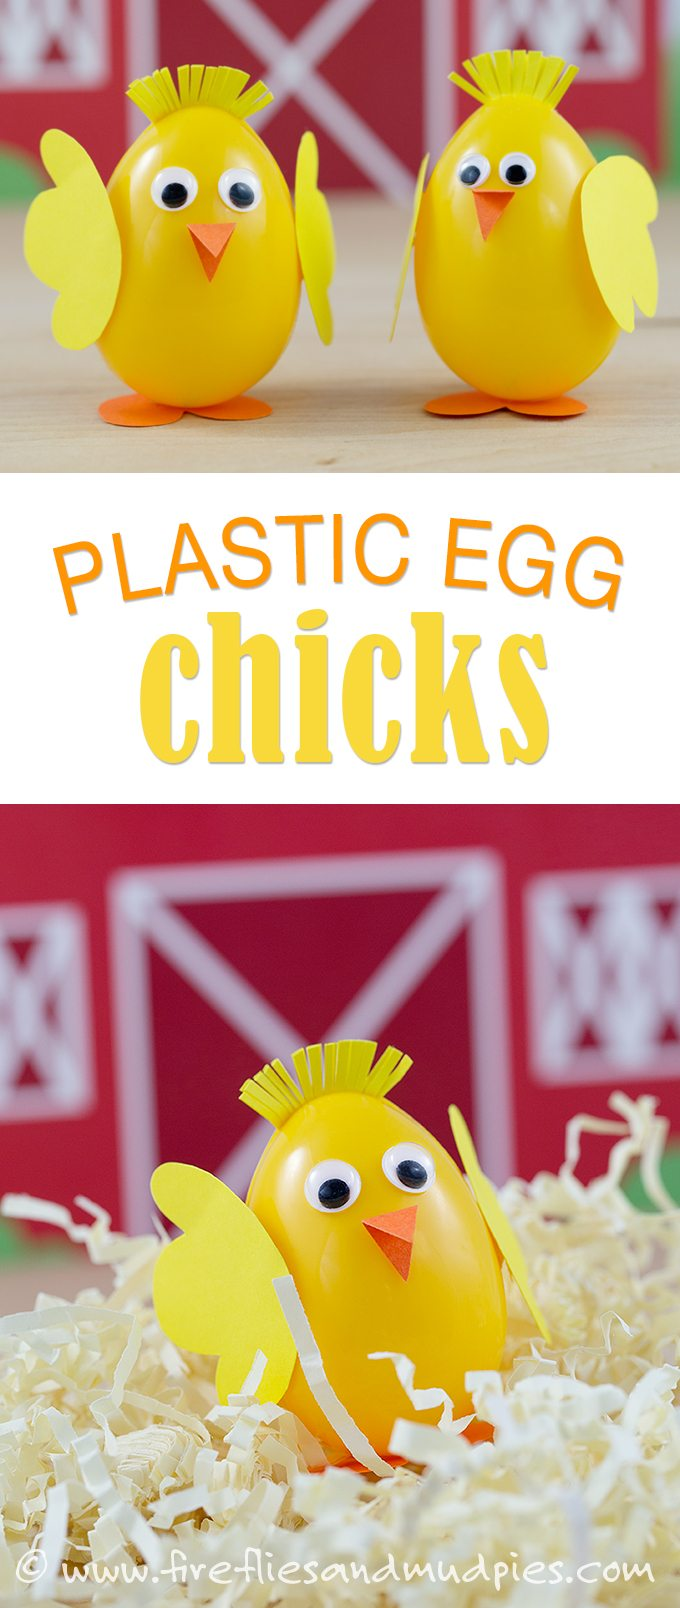 How to make plastic egg chicks for Easter…this is so cute!!